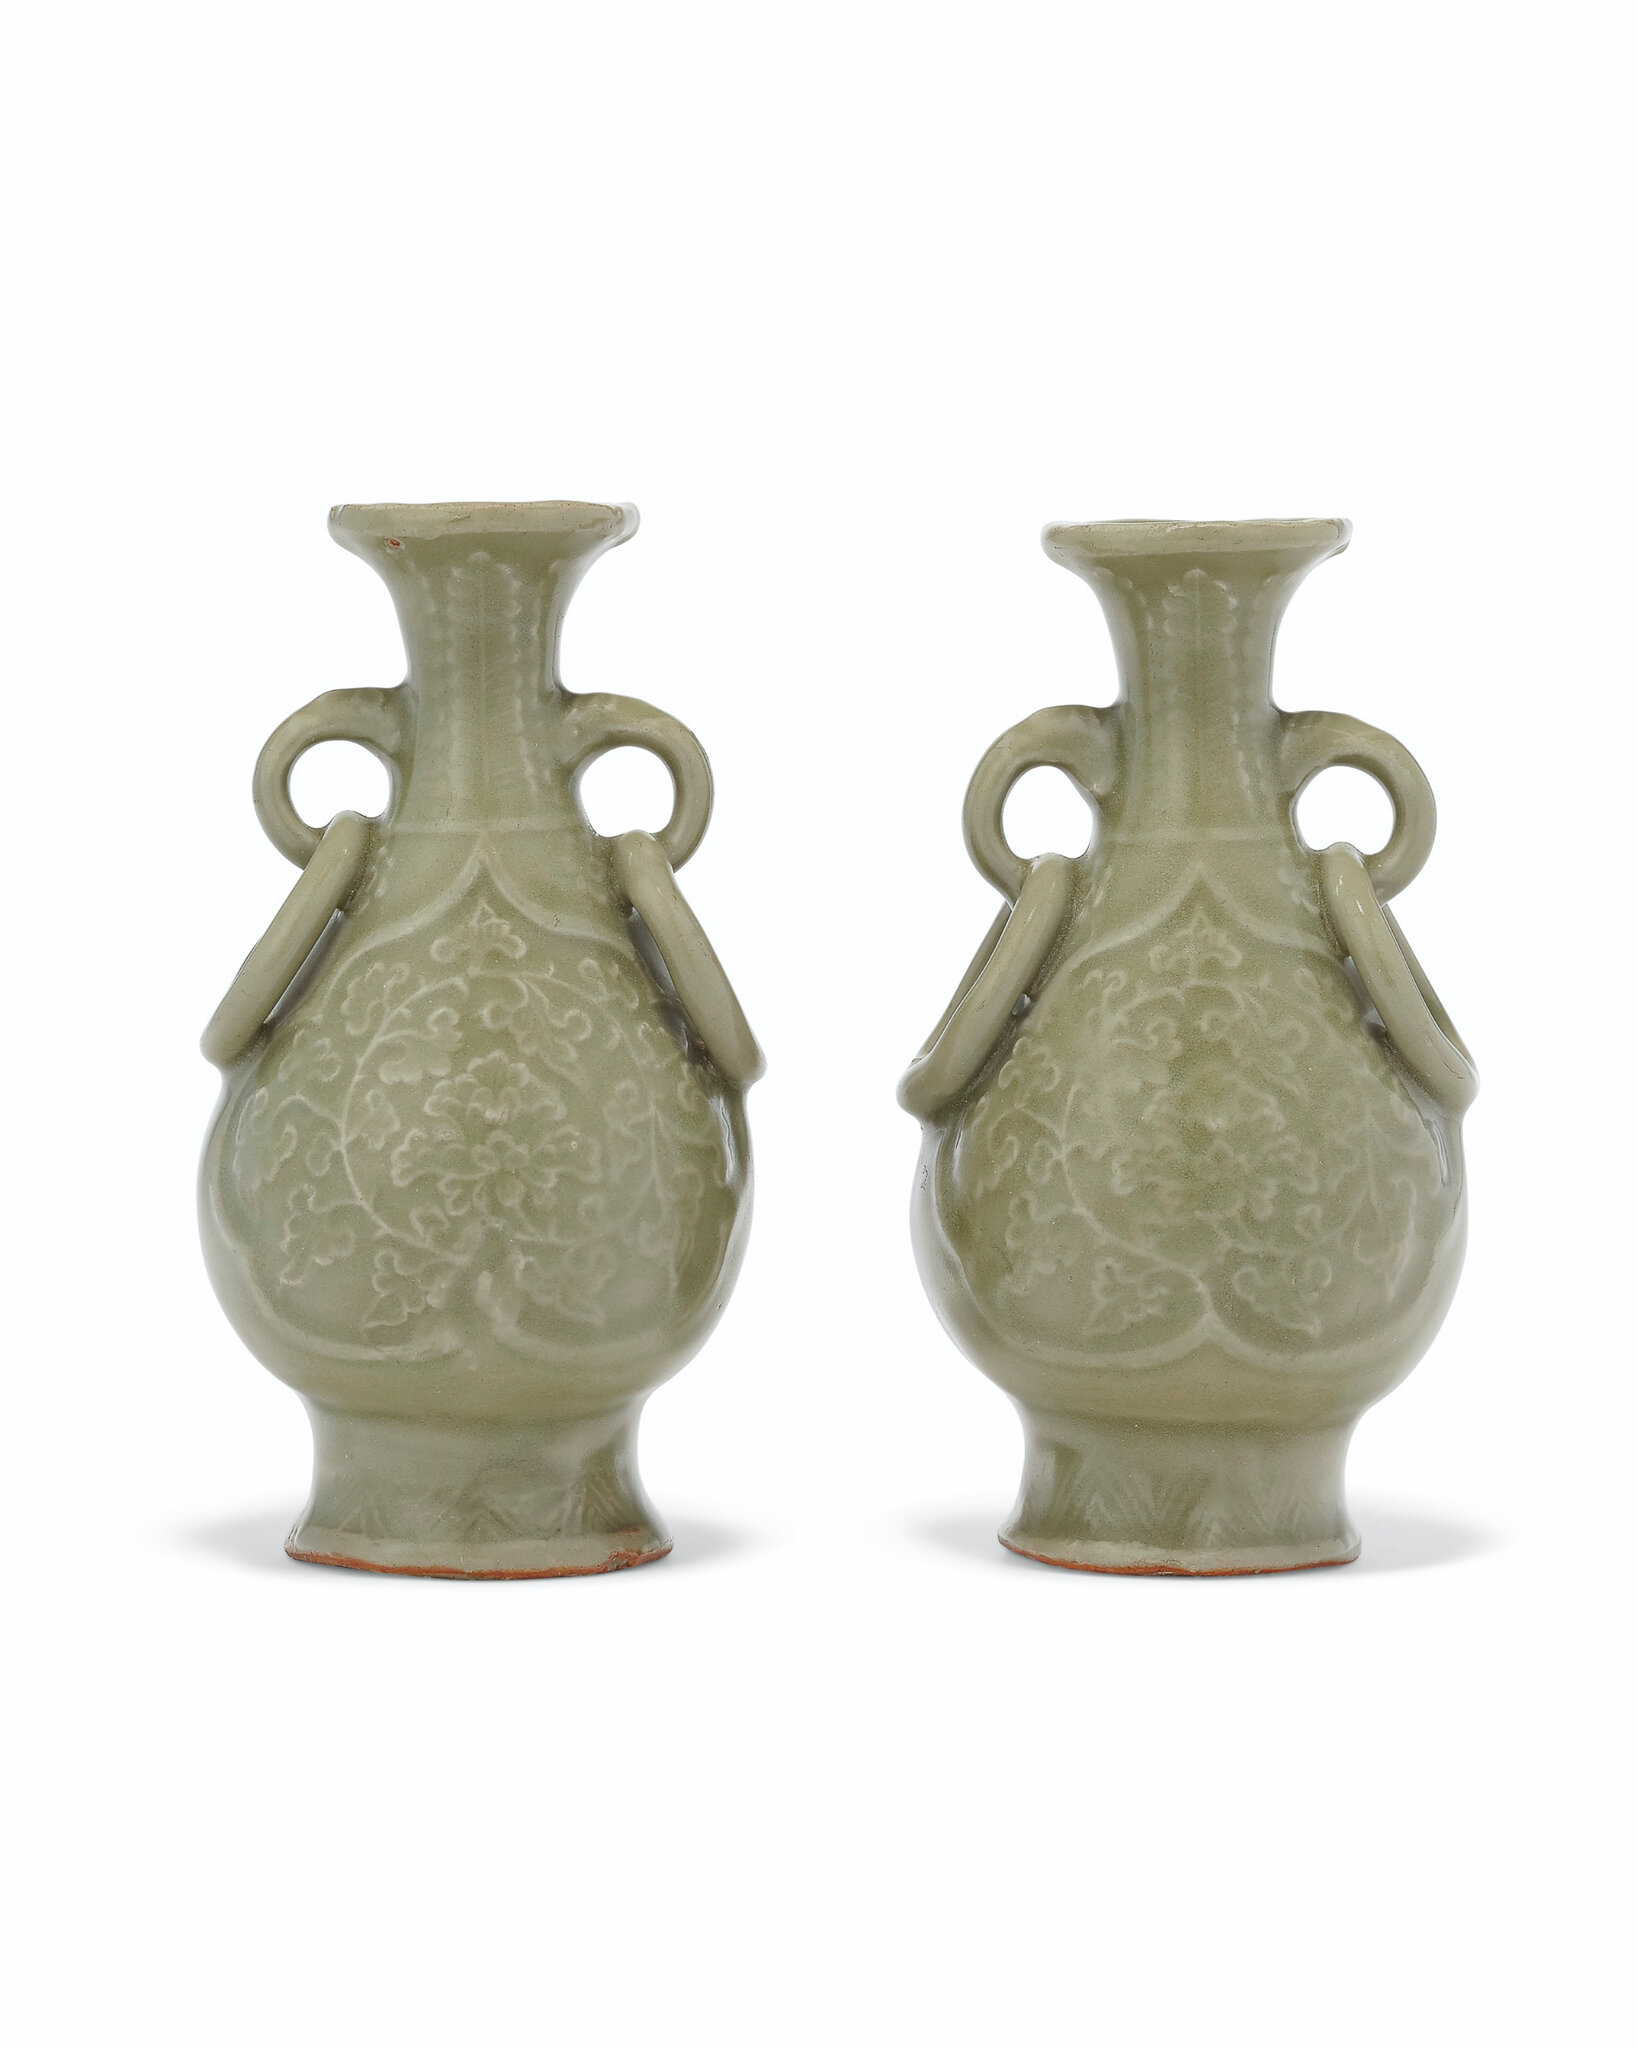 A pair of small molded Longquan celadon pear-shaped vases,Yuan-Ming dynasty (1279-1644)